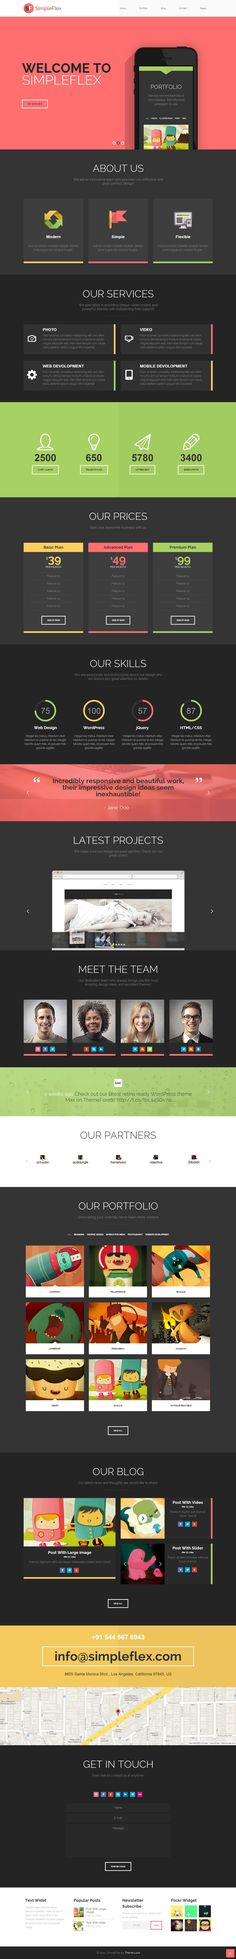 Flat One Page WordPress Theme. Great use of design principles. Like the layout and waypoints. Flat Web Design, Interaktives Design, Design Plat, Page Design, Layout Design, Web Responsive, Ui Web, Website Layout, Web Layout